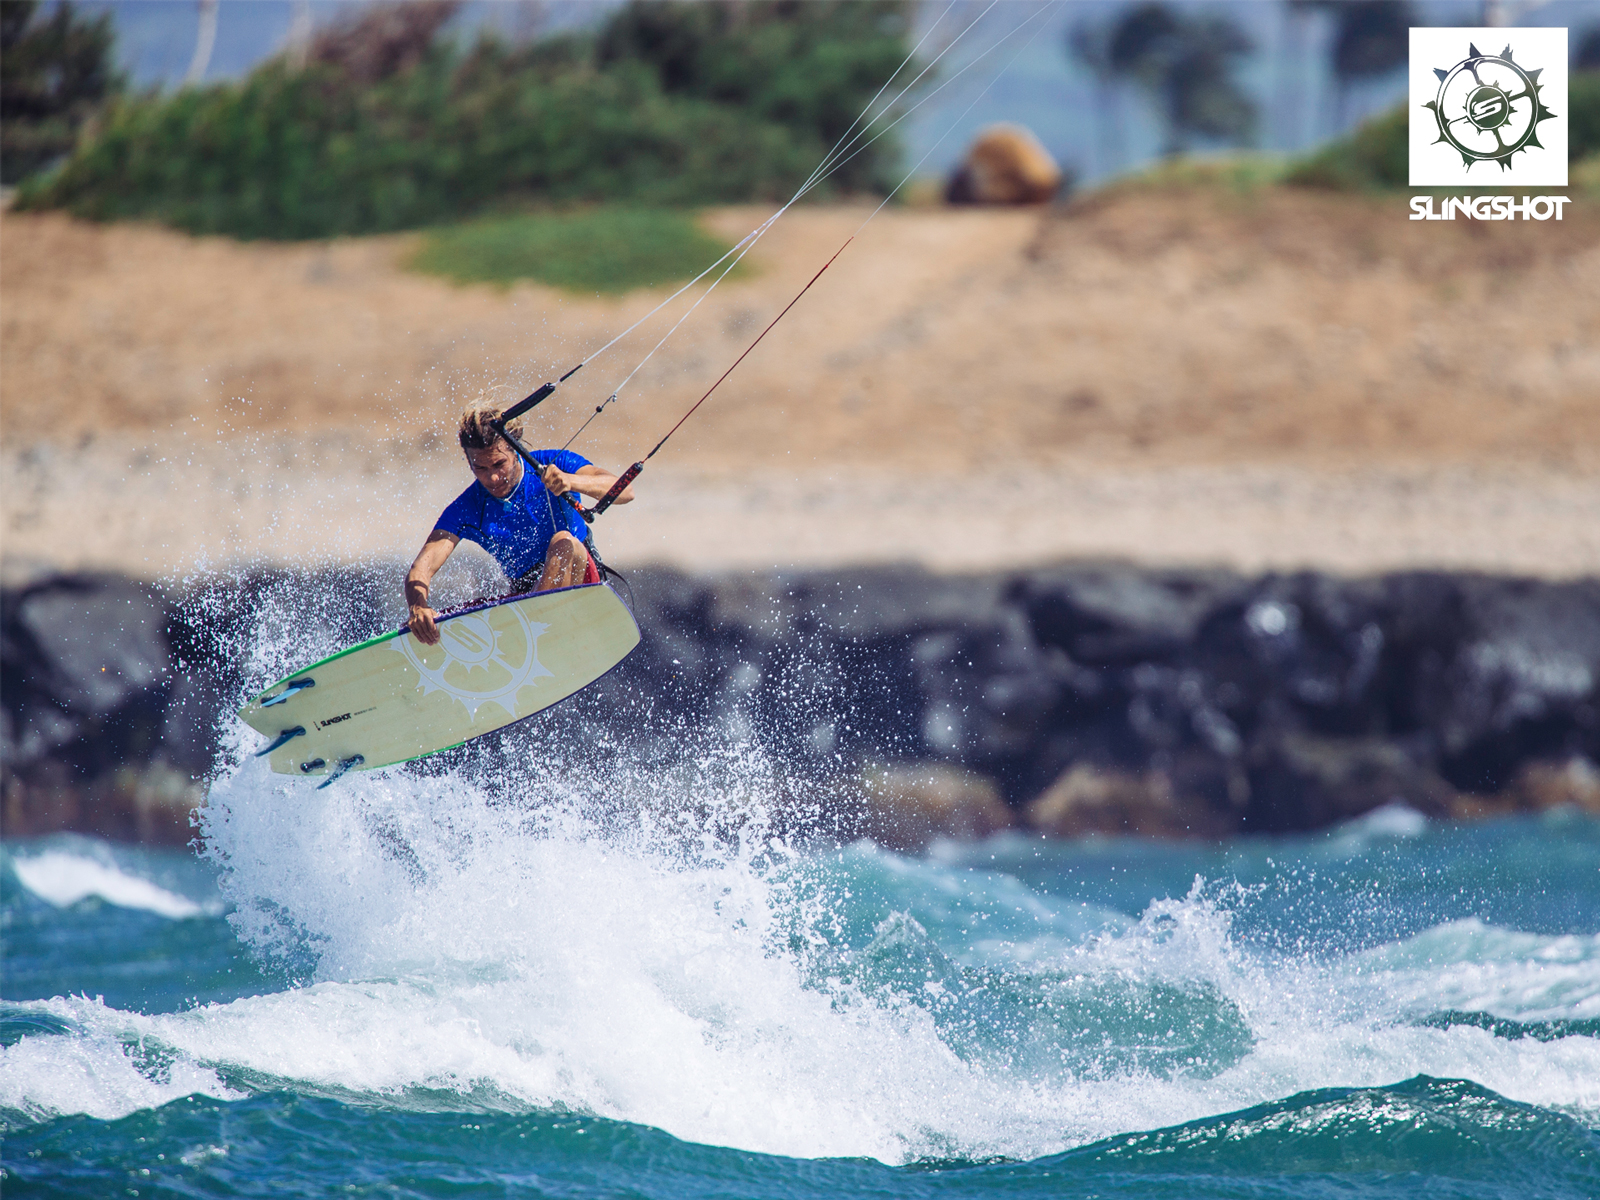 kitesurf wallpaper image - Patrick Rebstock on the 2015 Slingshot Angry Swallow kiteboard - in resolution: Standard 4:3 1600 X 1200